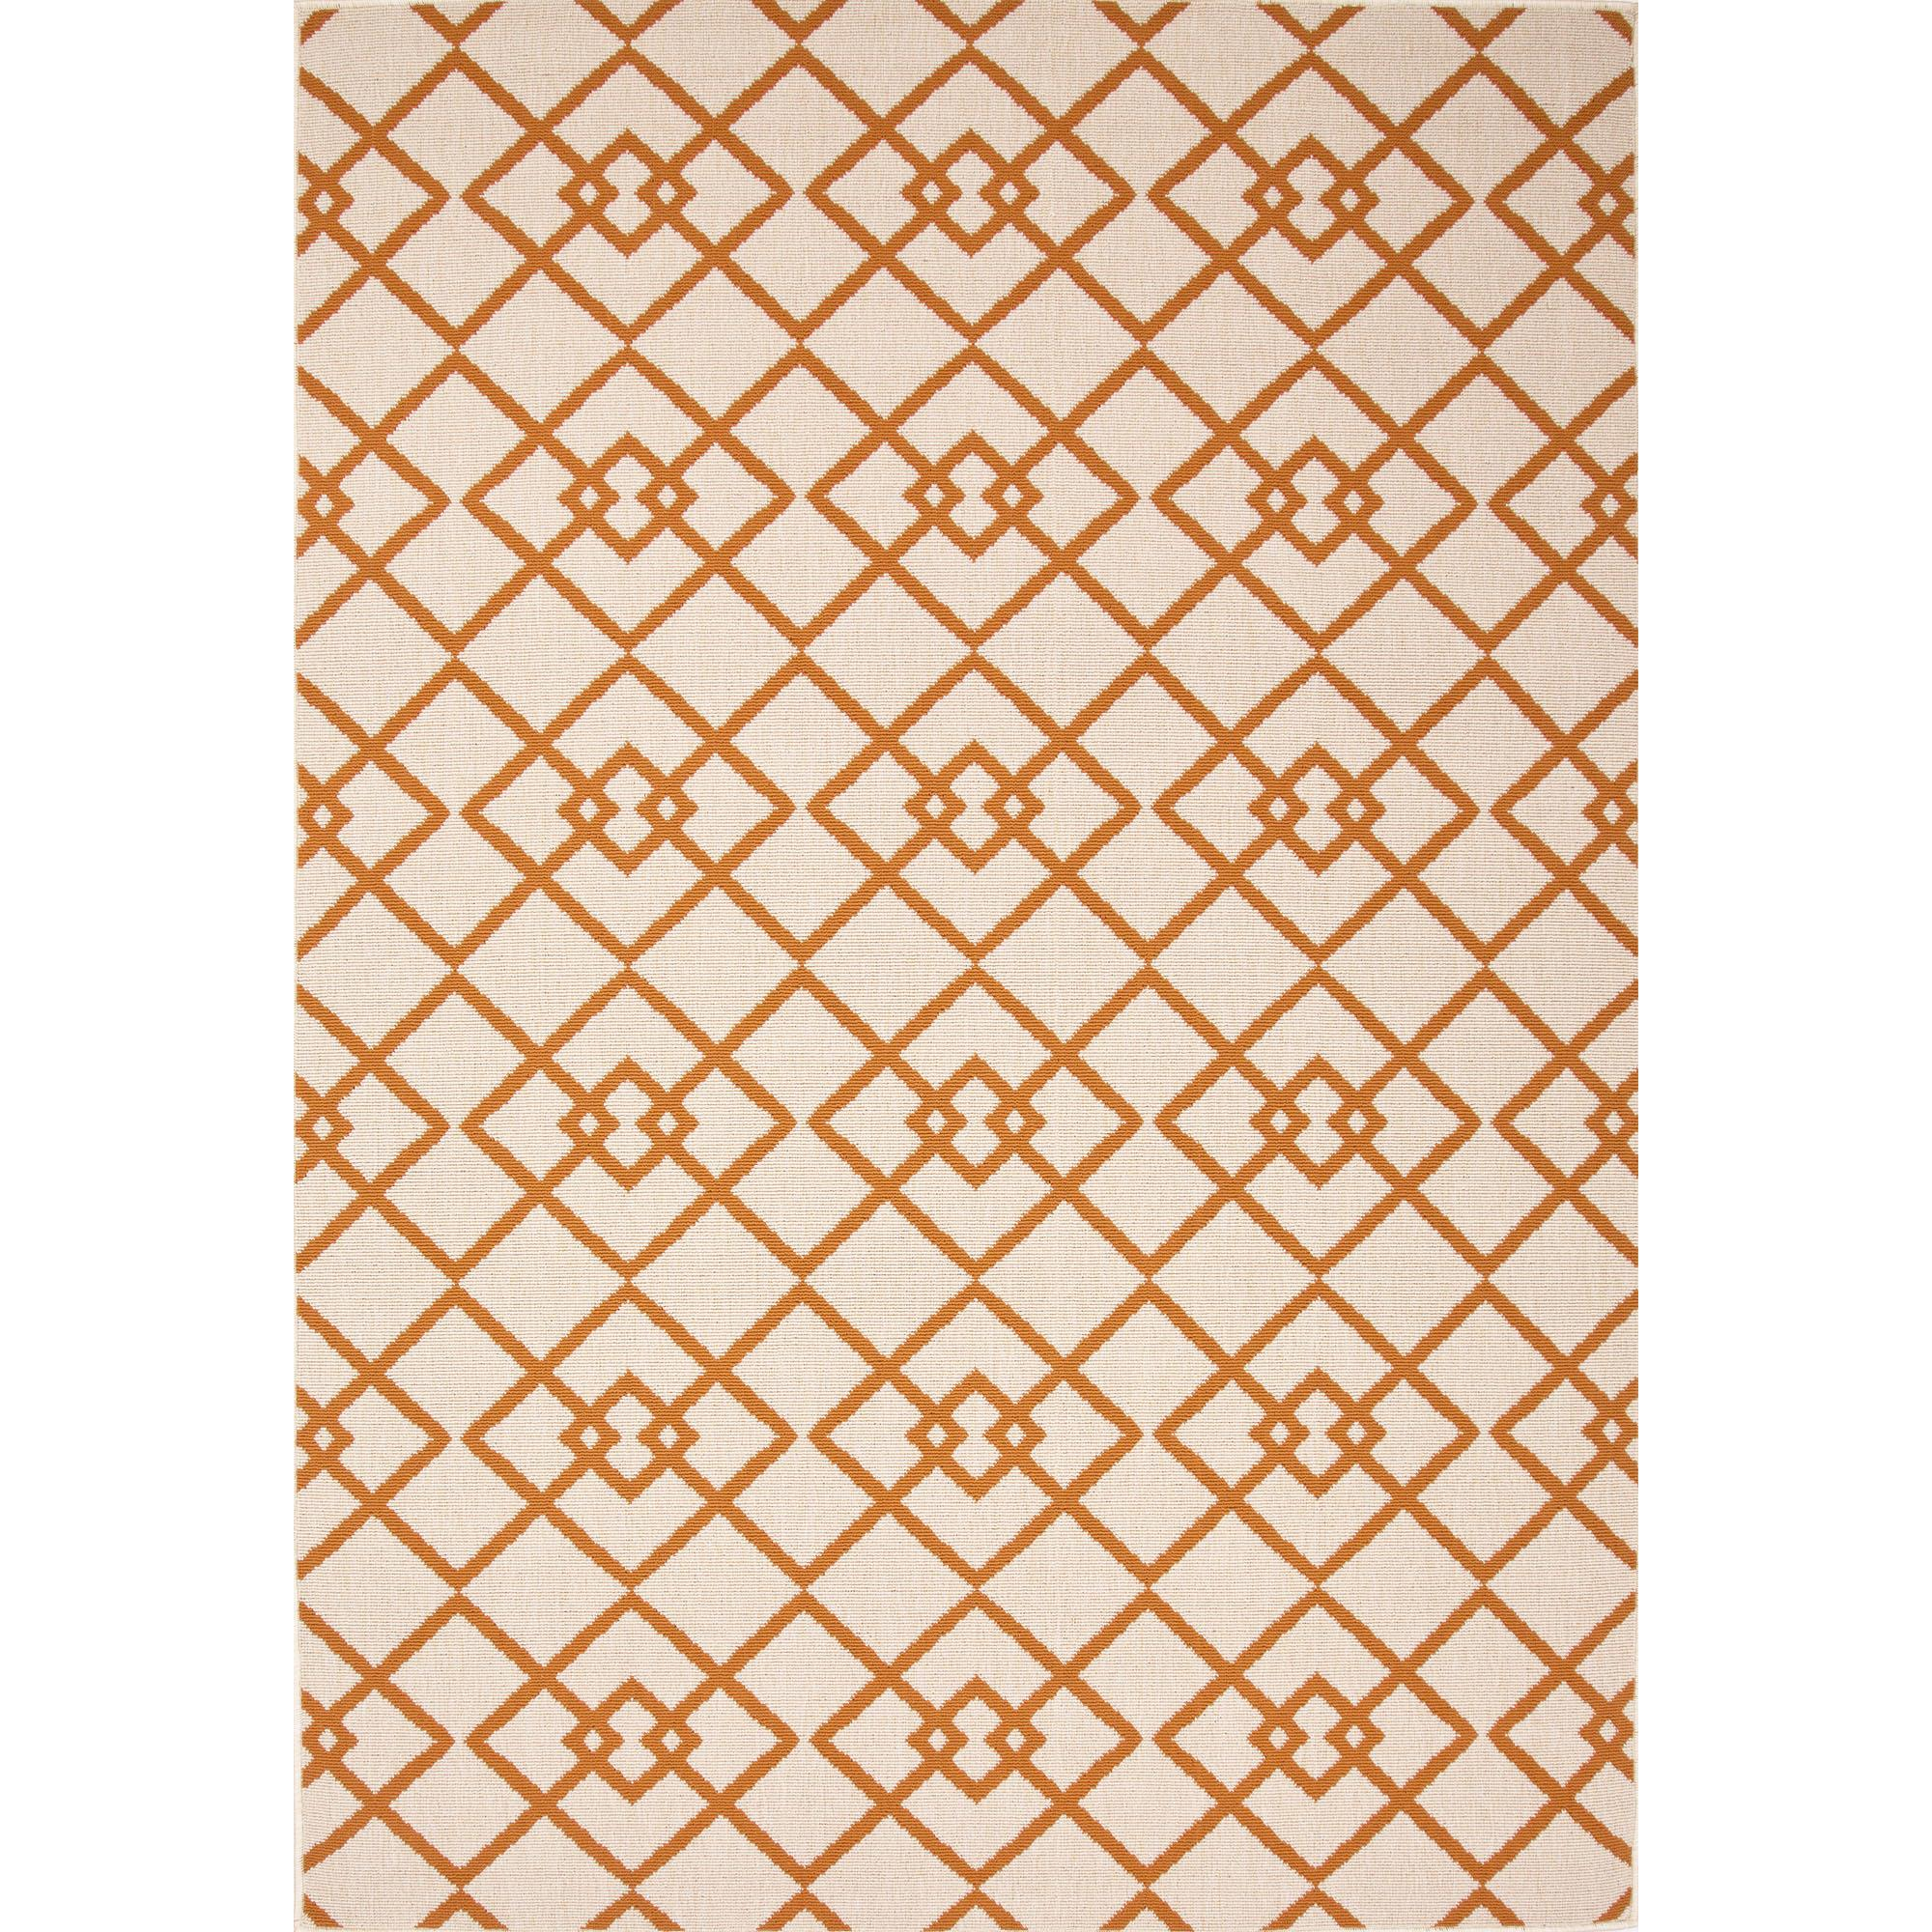 Bloom 4 x 5.3 Rug by JAIPUR Living at Malouf Furniture Co.